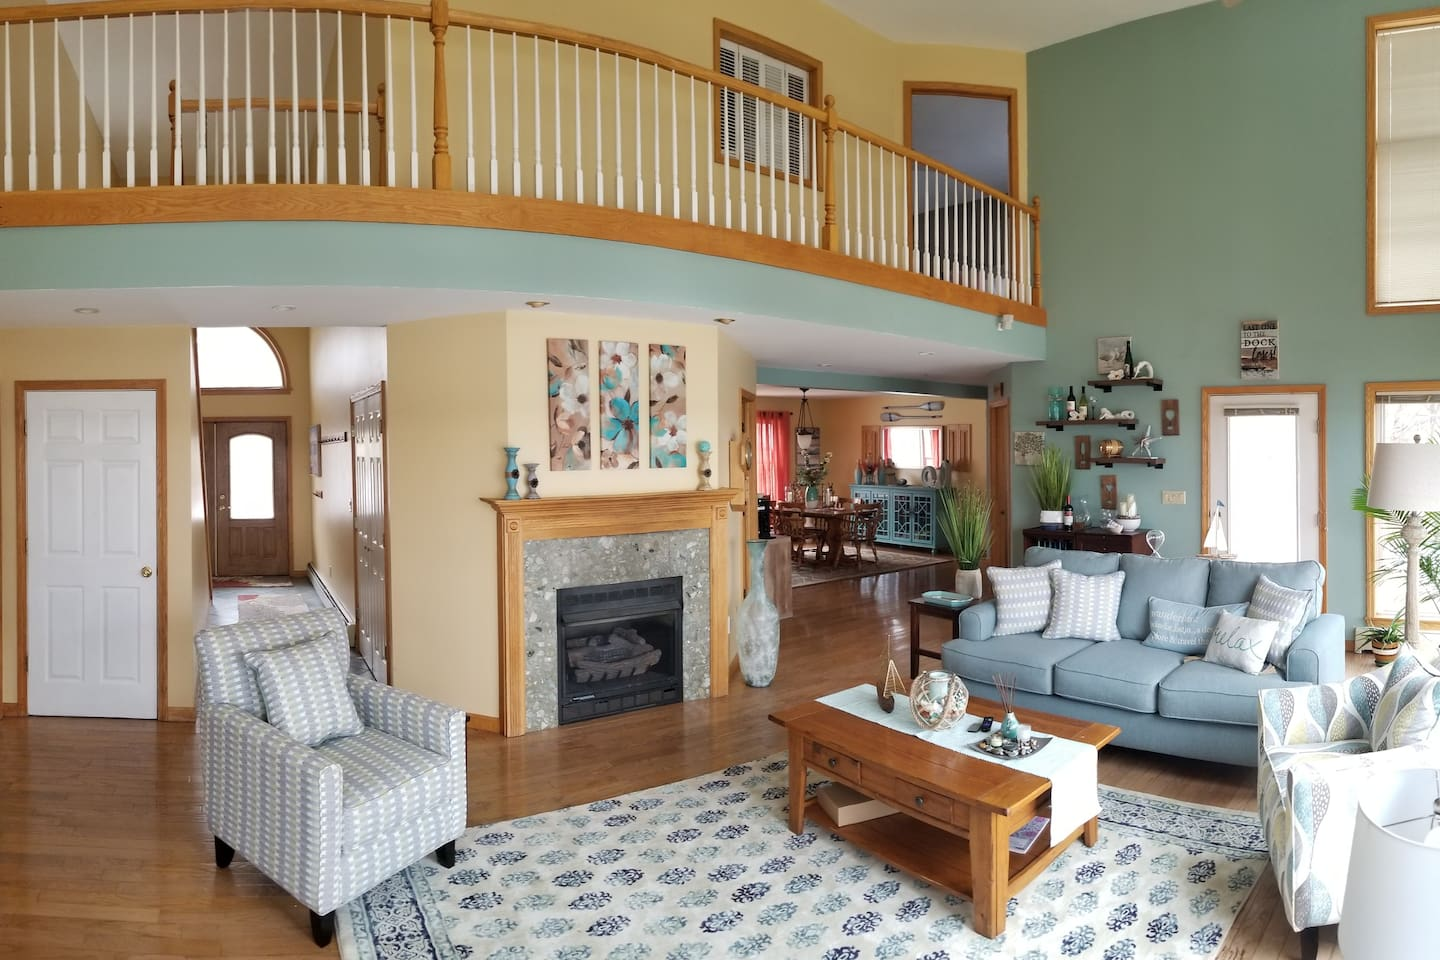 3000 square feet of comfort on 200 feet of lakefront, East Side of Cayuga Lake, New York